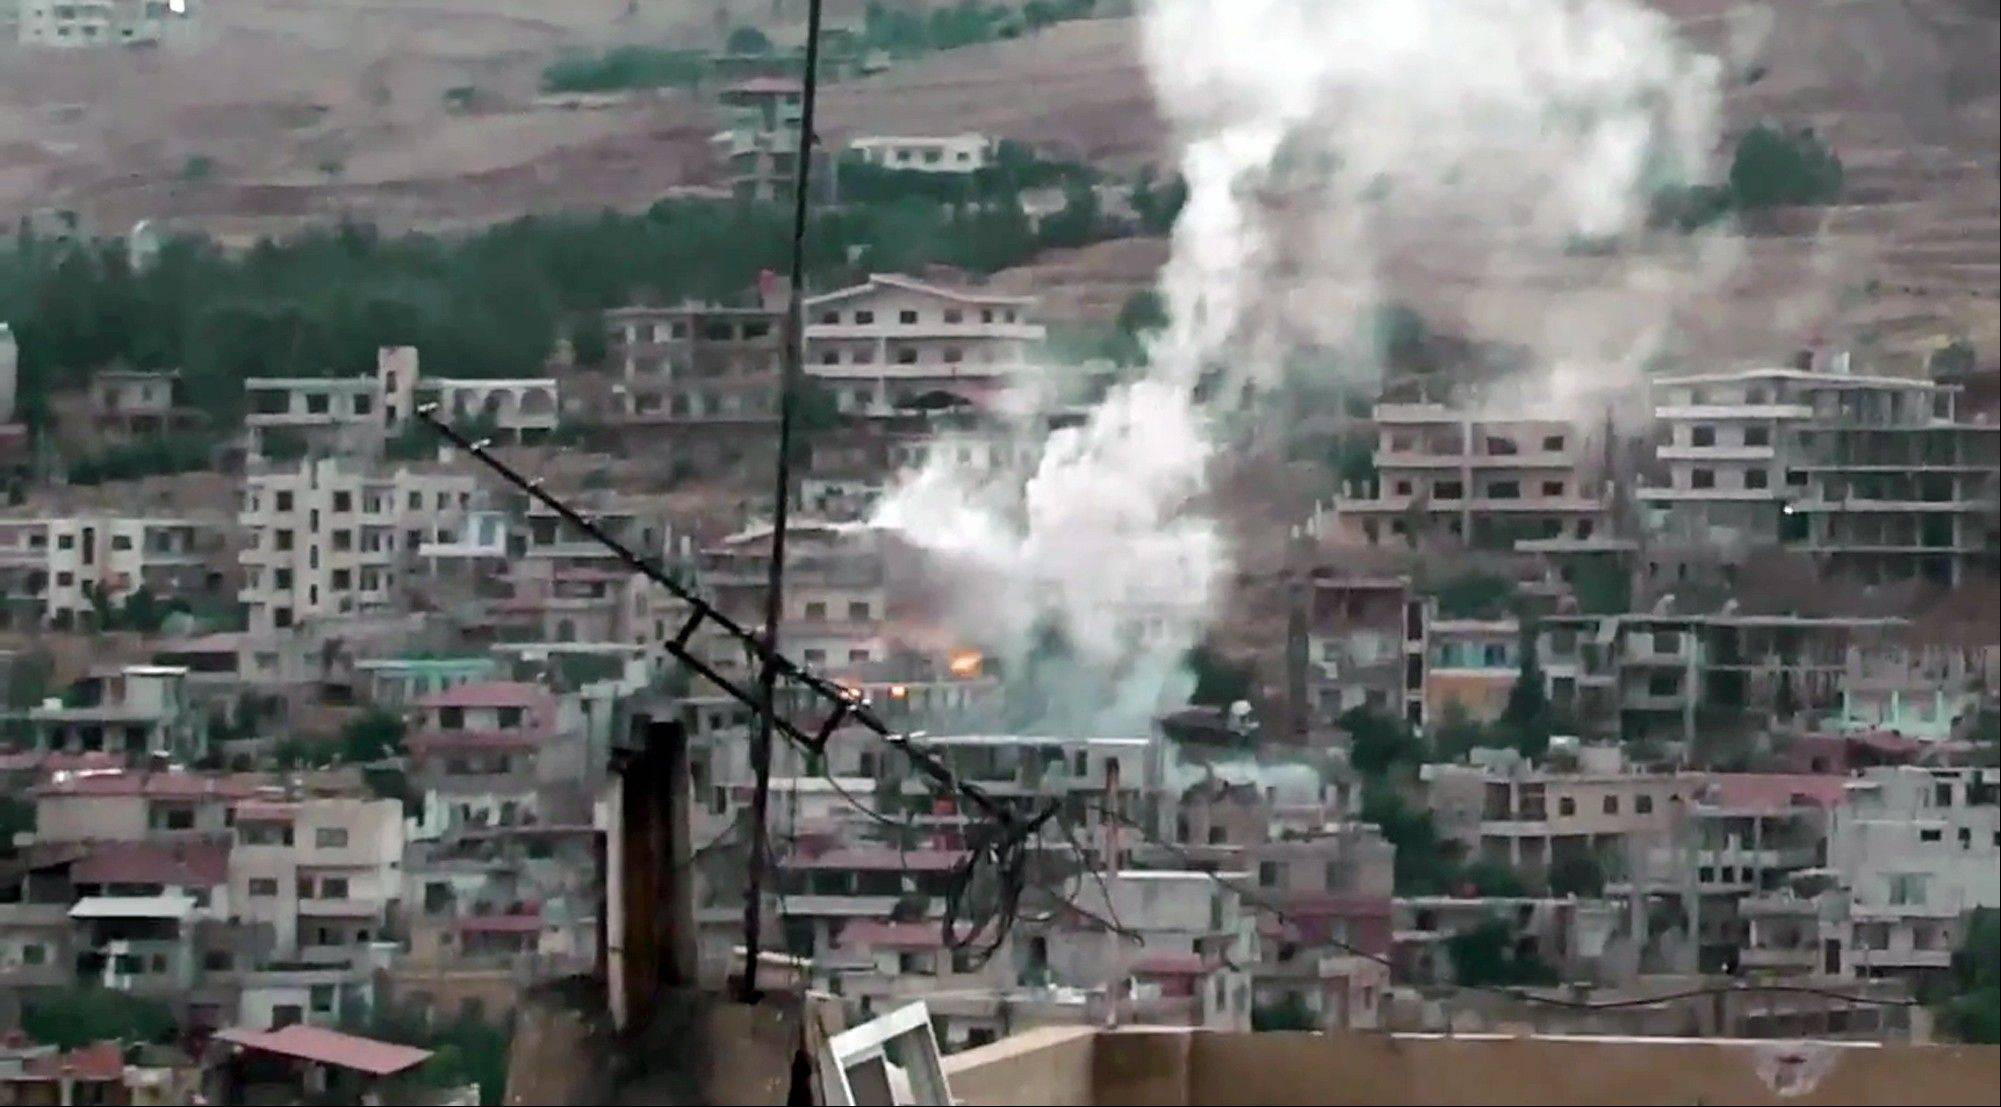 In this citizen journalism image provided by Shaam News Network SNN, taken on Saturday, Aug. 4, 2012, purports to show shelling in Zabadani, near Damascus, Syria.